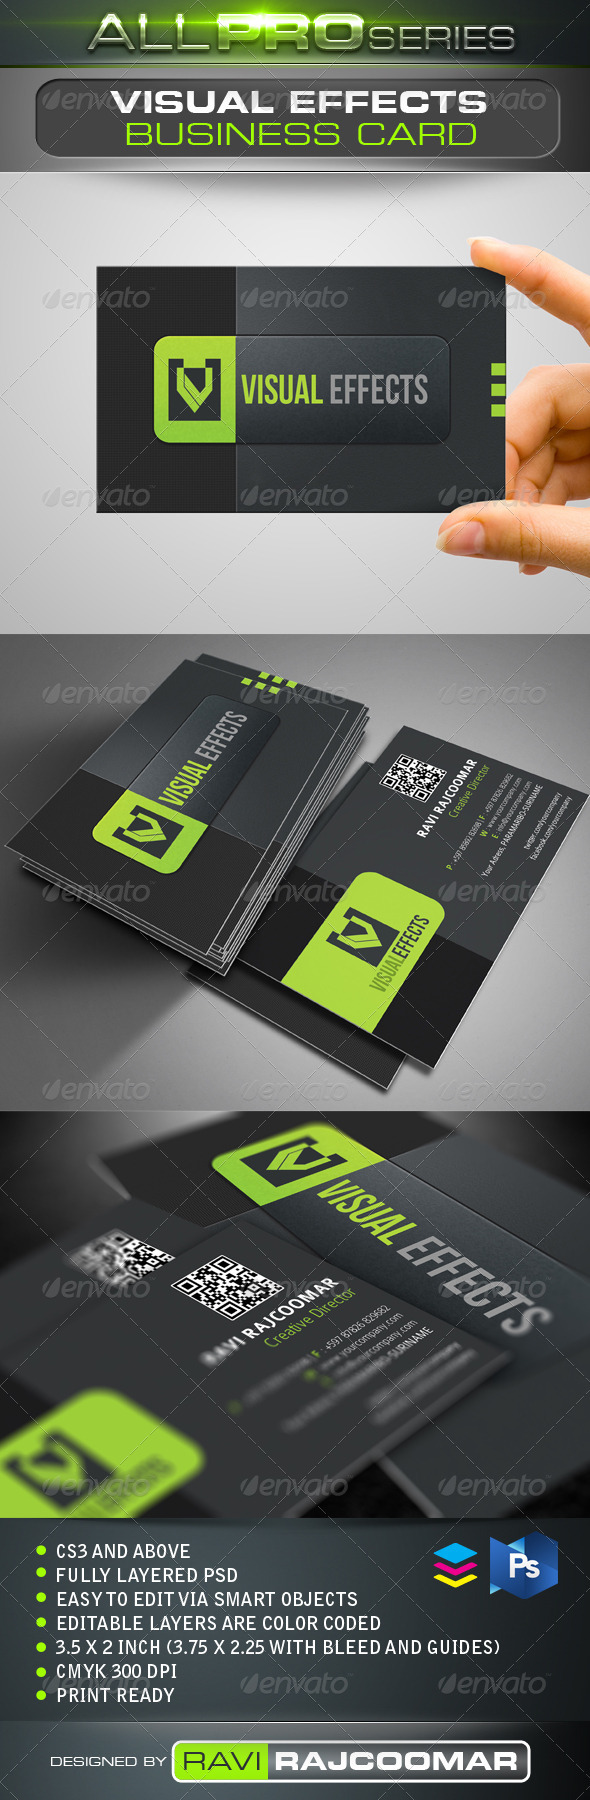 GraphicRiver Visual Effects Business Card 3554378